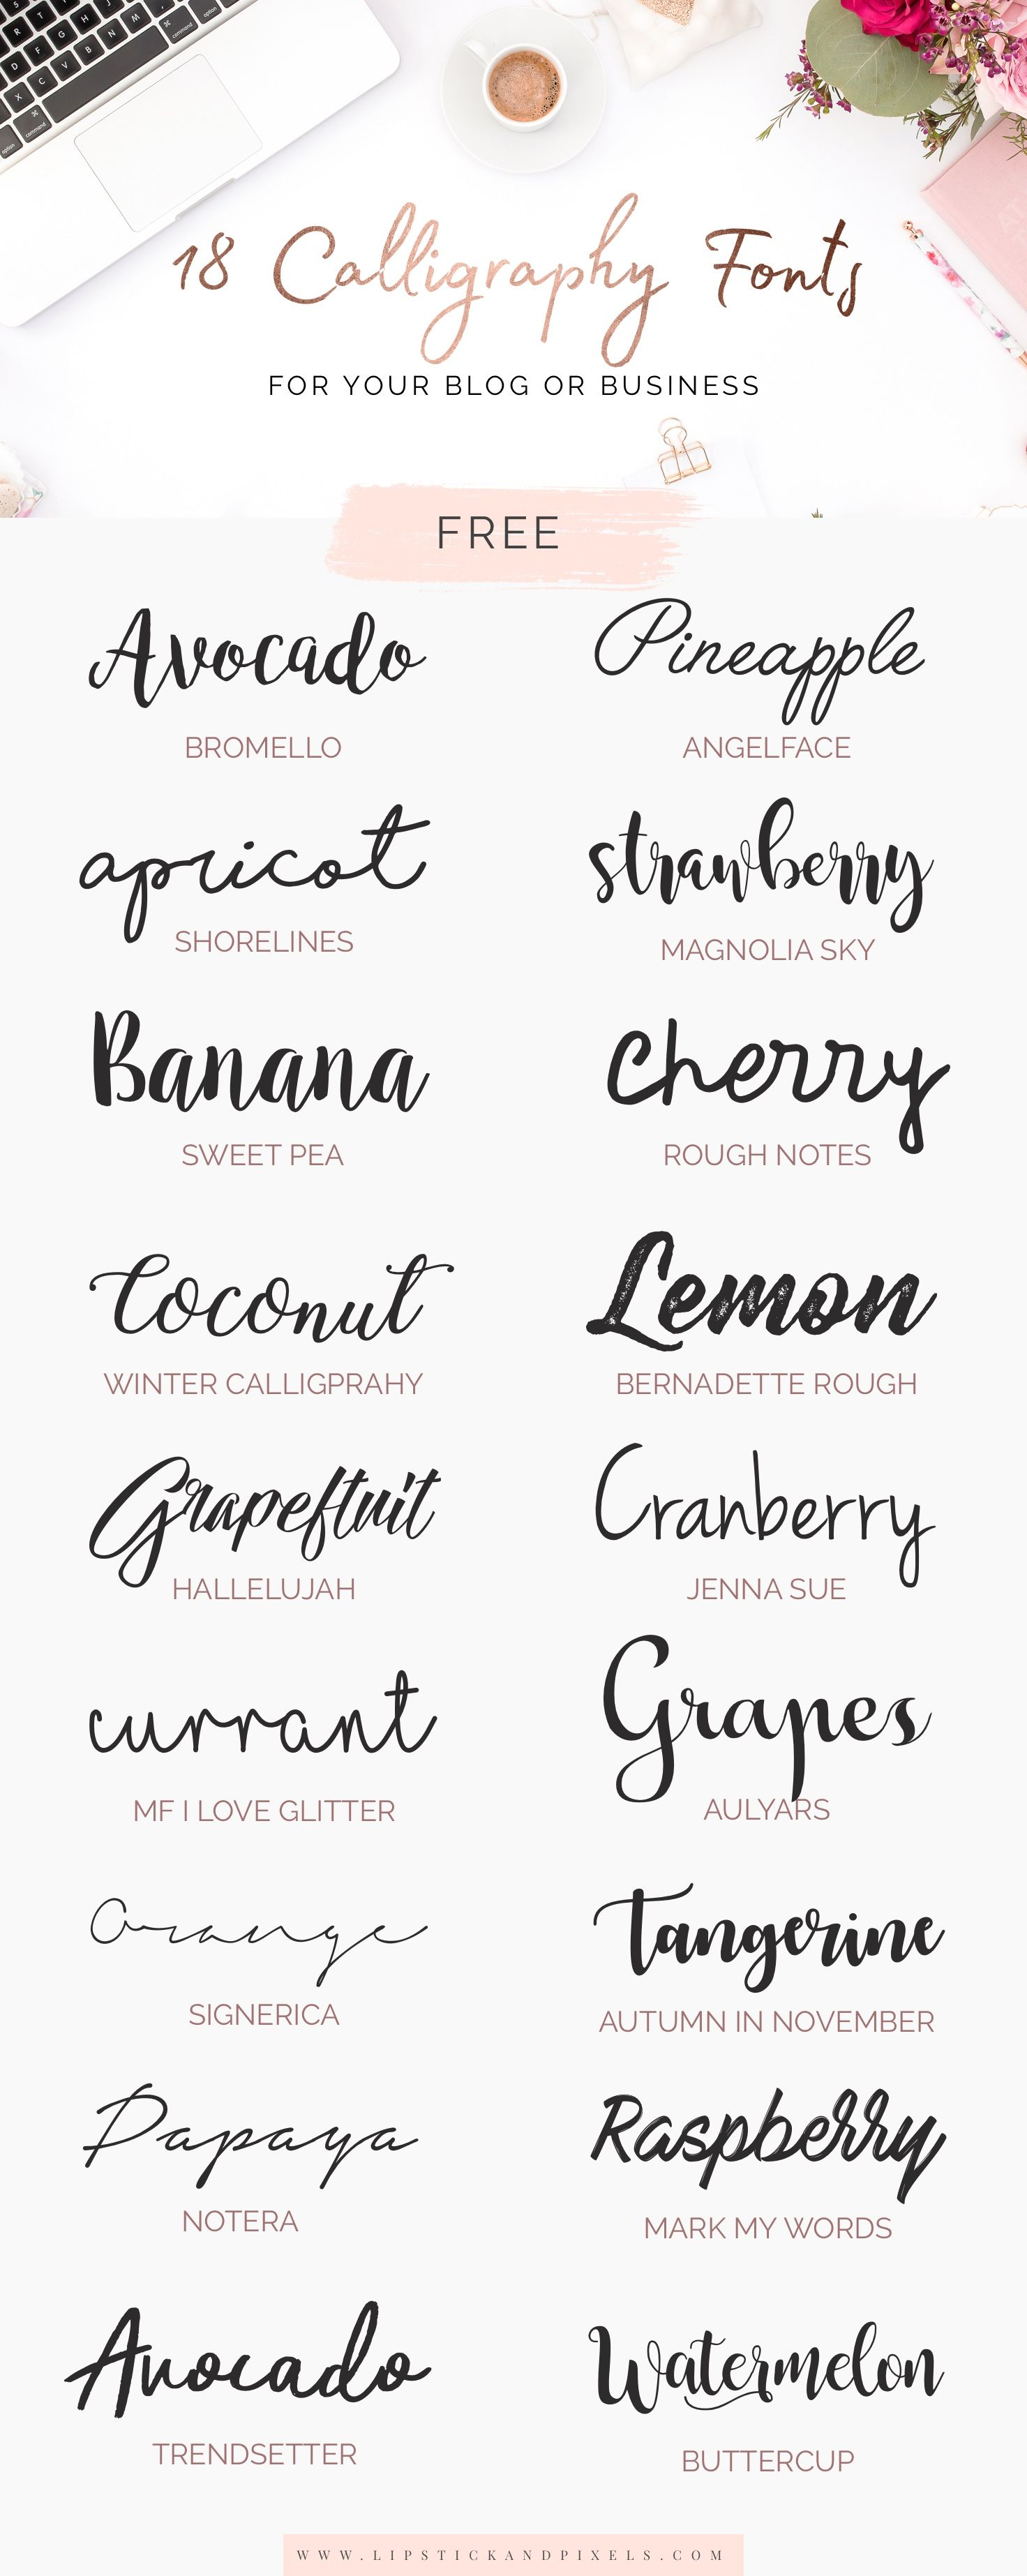 Calligraphy Fonts Victorian 18 Free Calligraphy Fonts For Your Blog Or Business Writing